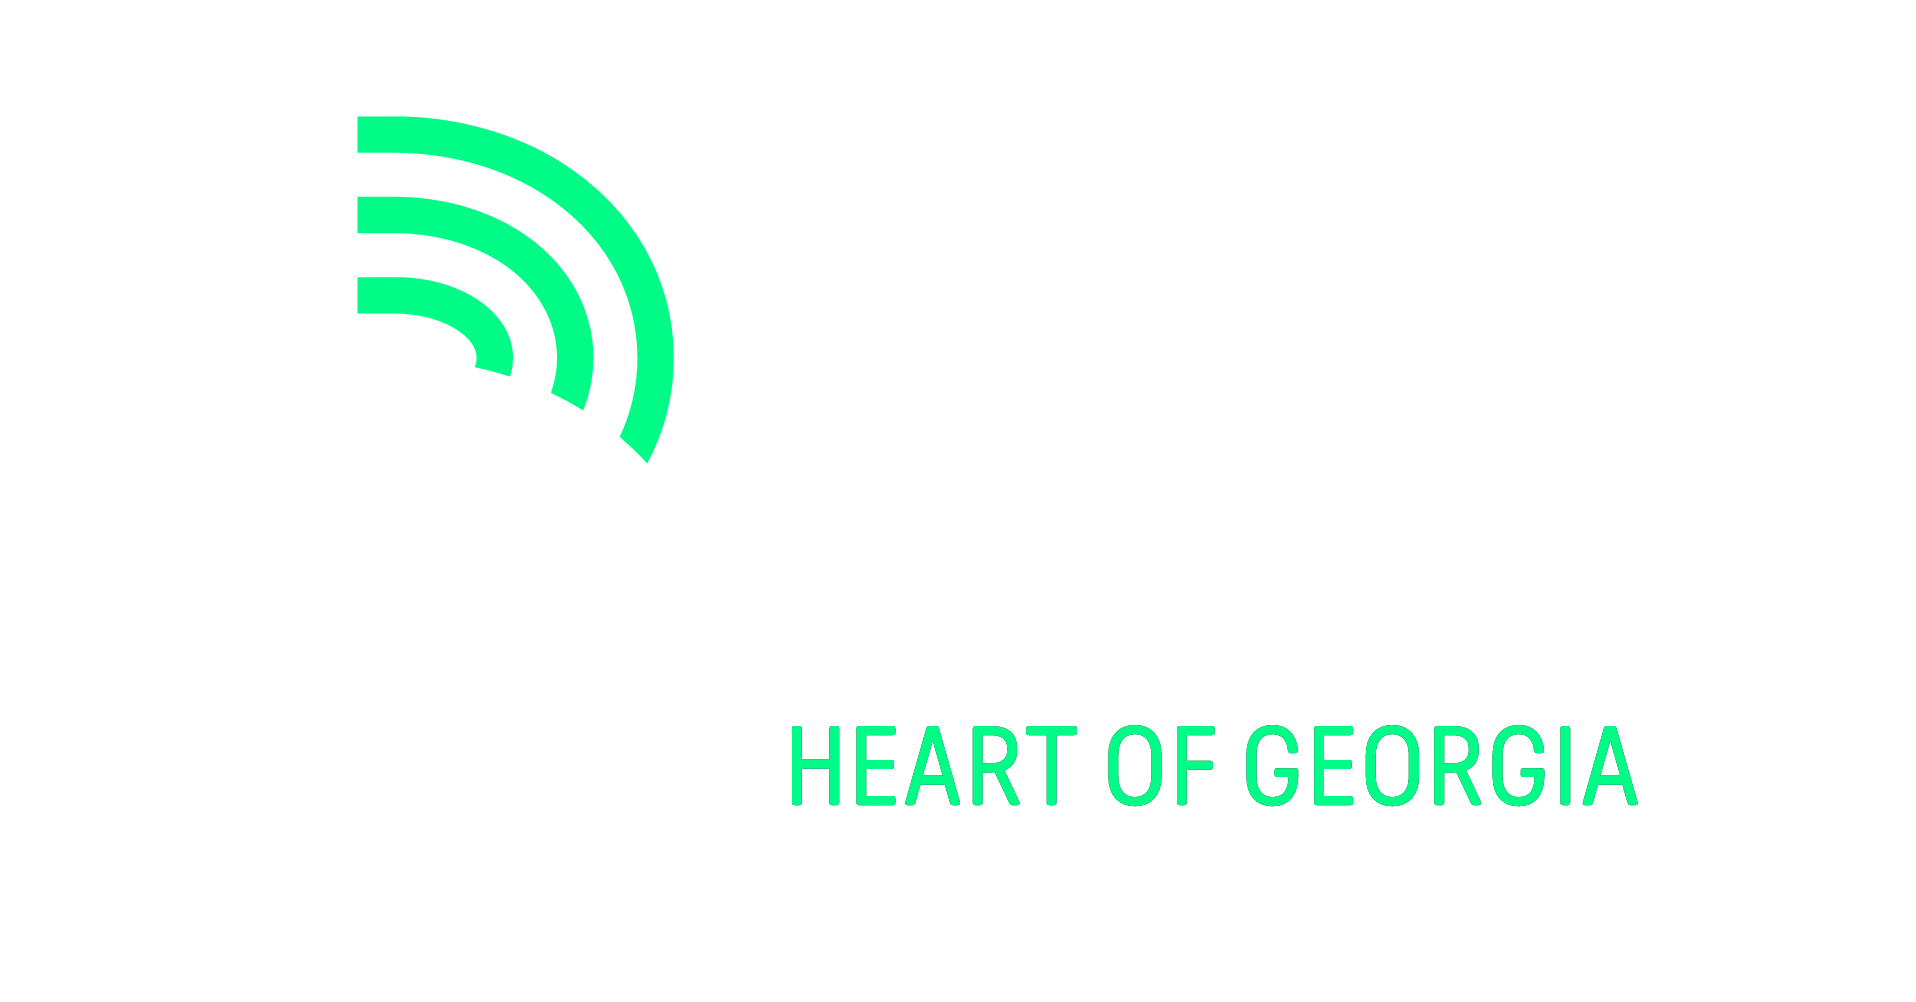 of the Heart of Georgia